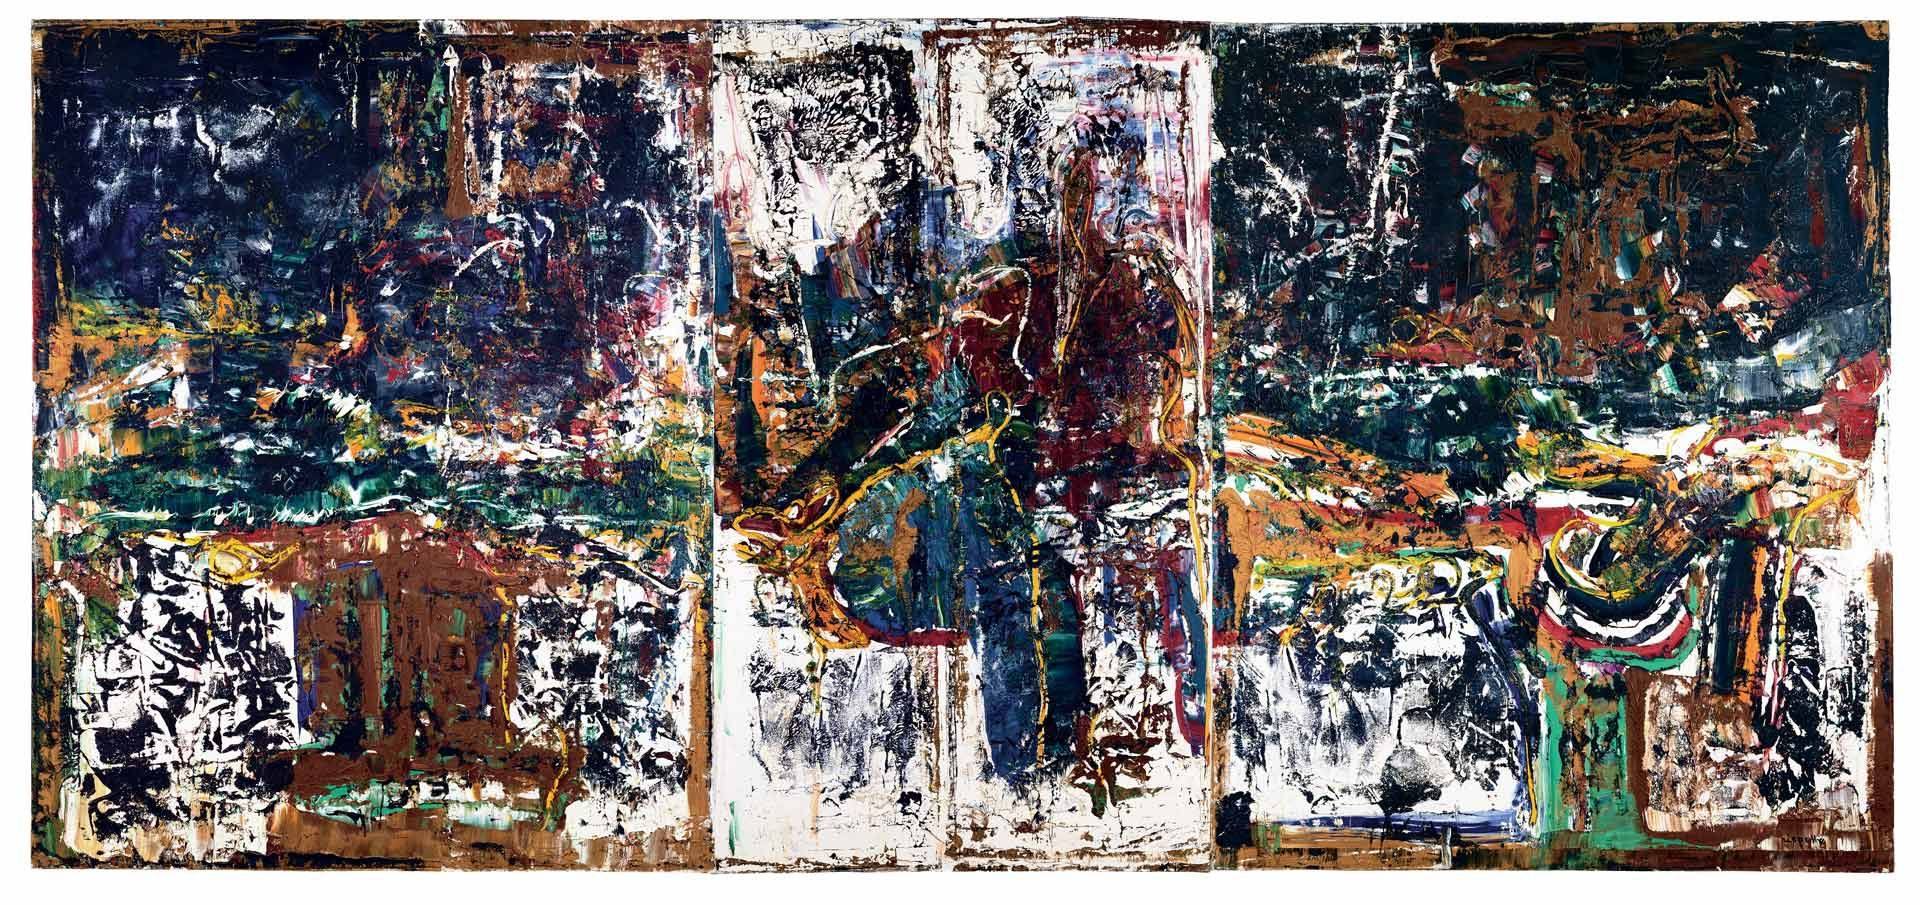 Jean Paul Riopelle (1923-2002), D'un long voyage (triptych), 1973, oil on canvas, 162.6 x 355.6 cm. Private collection. © Estate of Jean Paul Riopelle / SOCAN (2020). Photo archives catalogue raisonné Jean Paul Riopelle